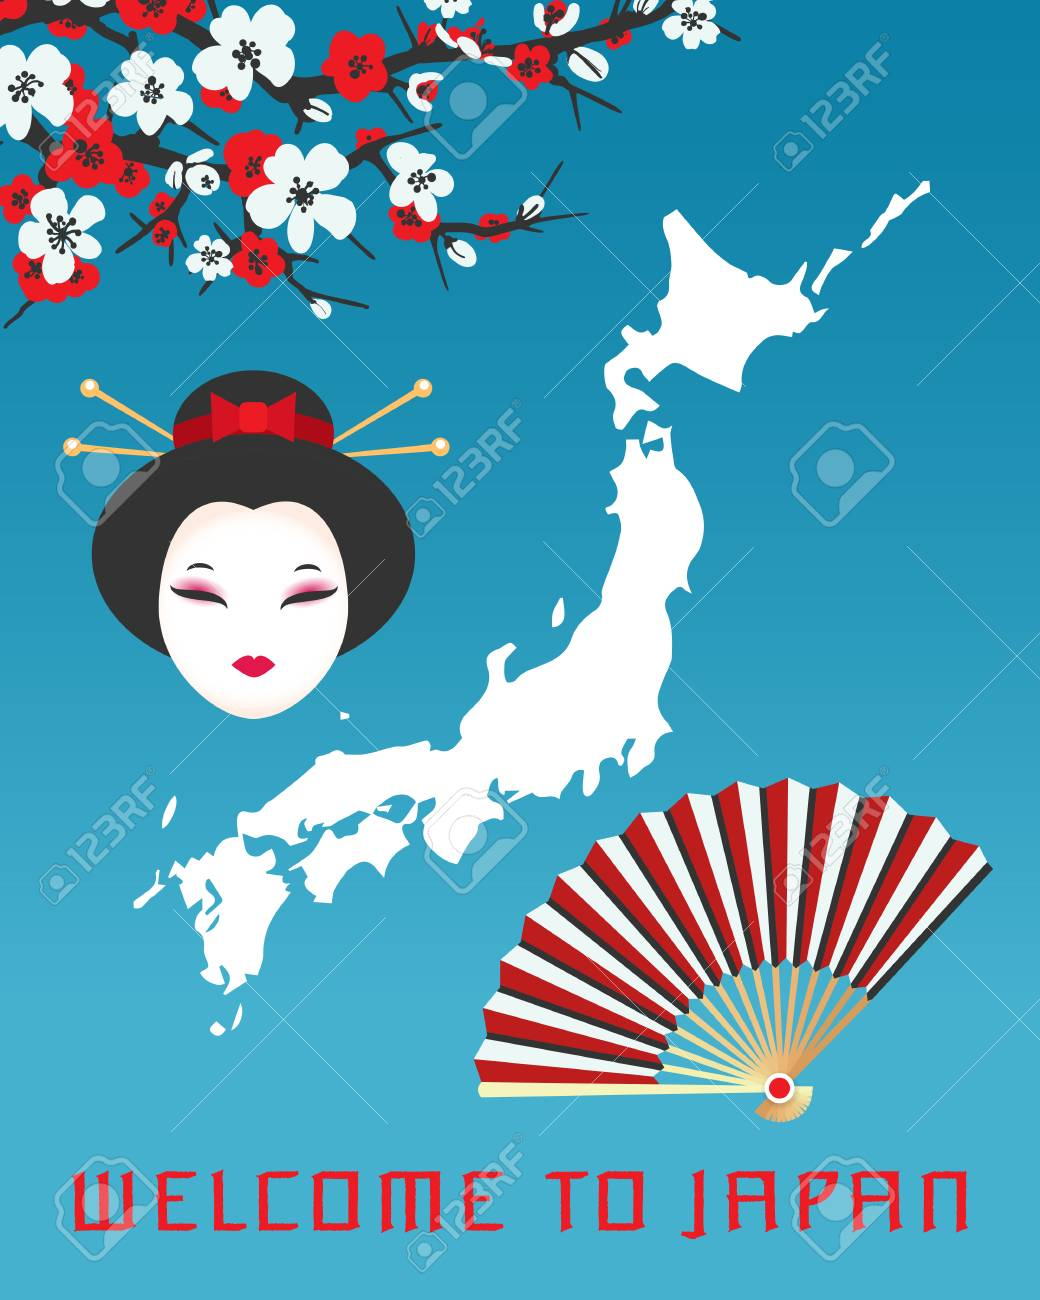 Welcome to Japan poster template  Vector illustration with map